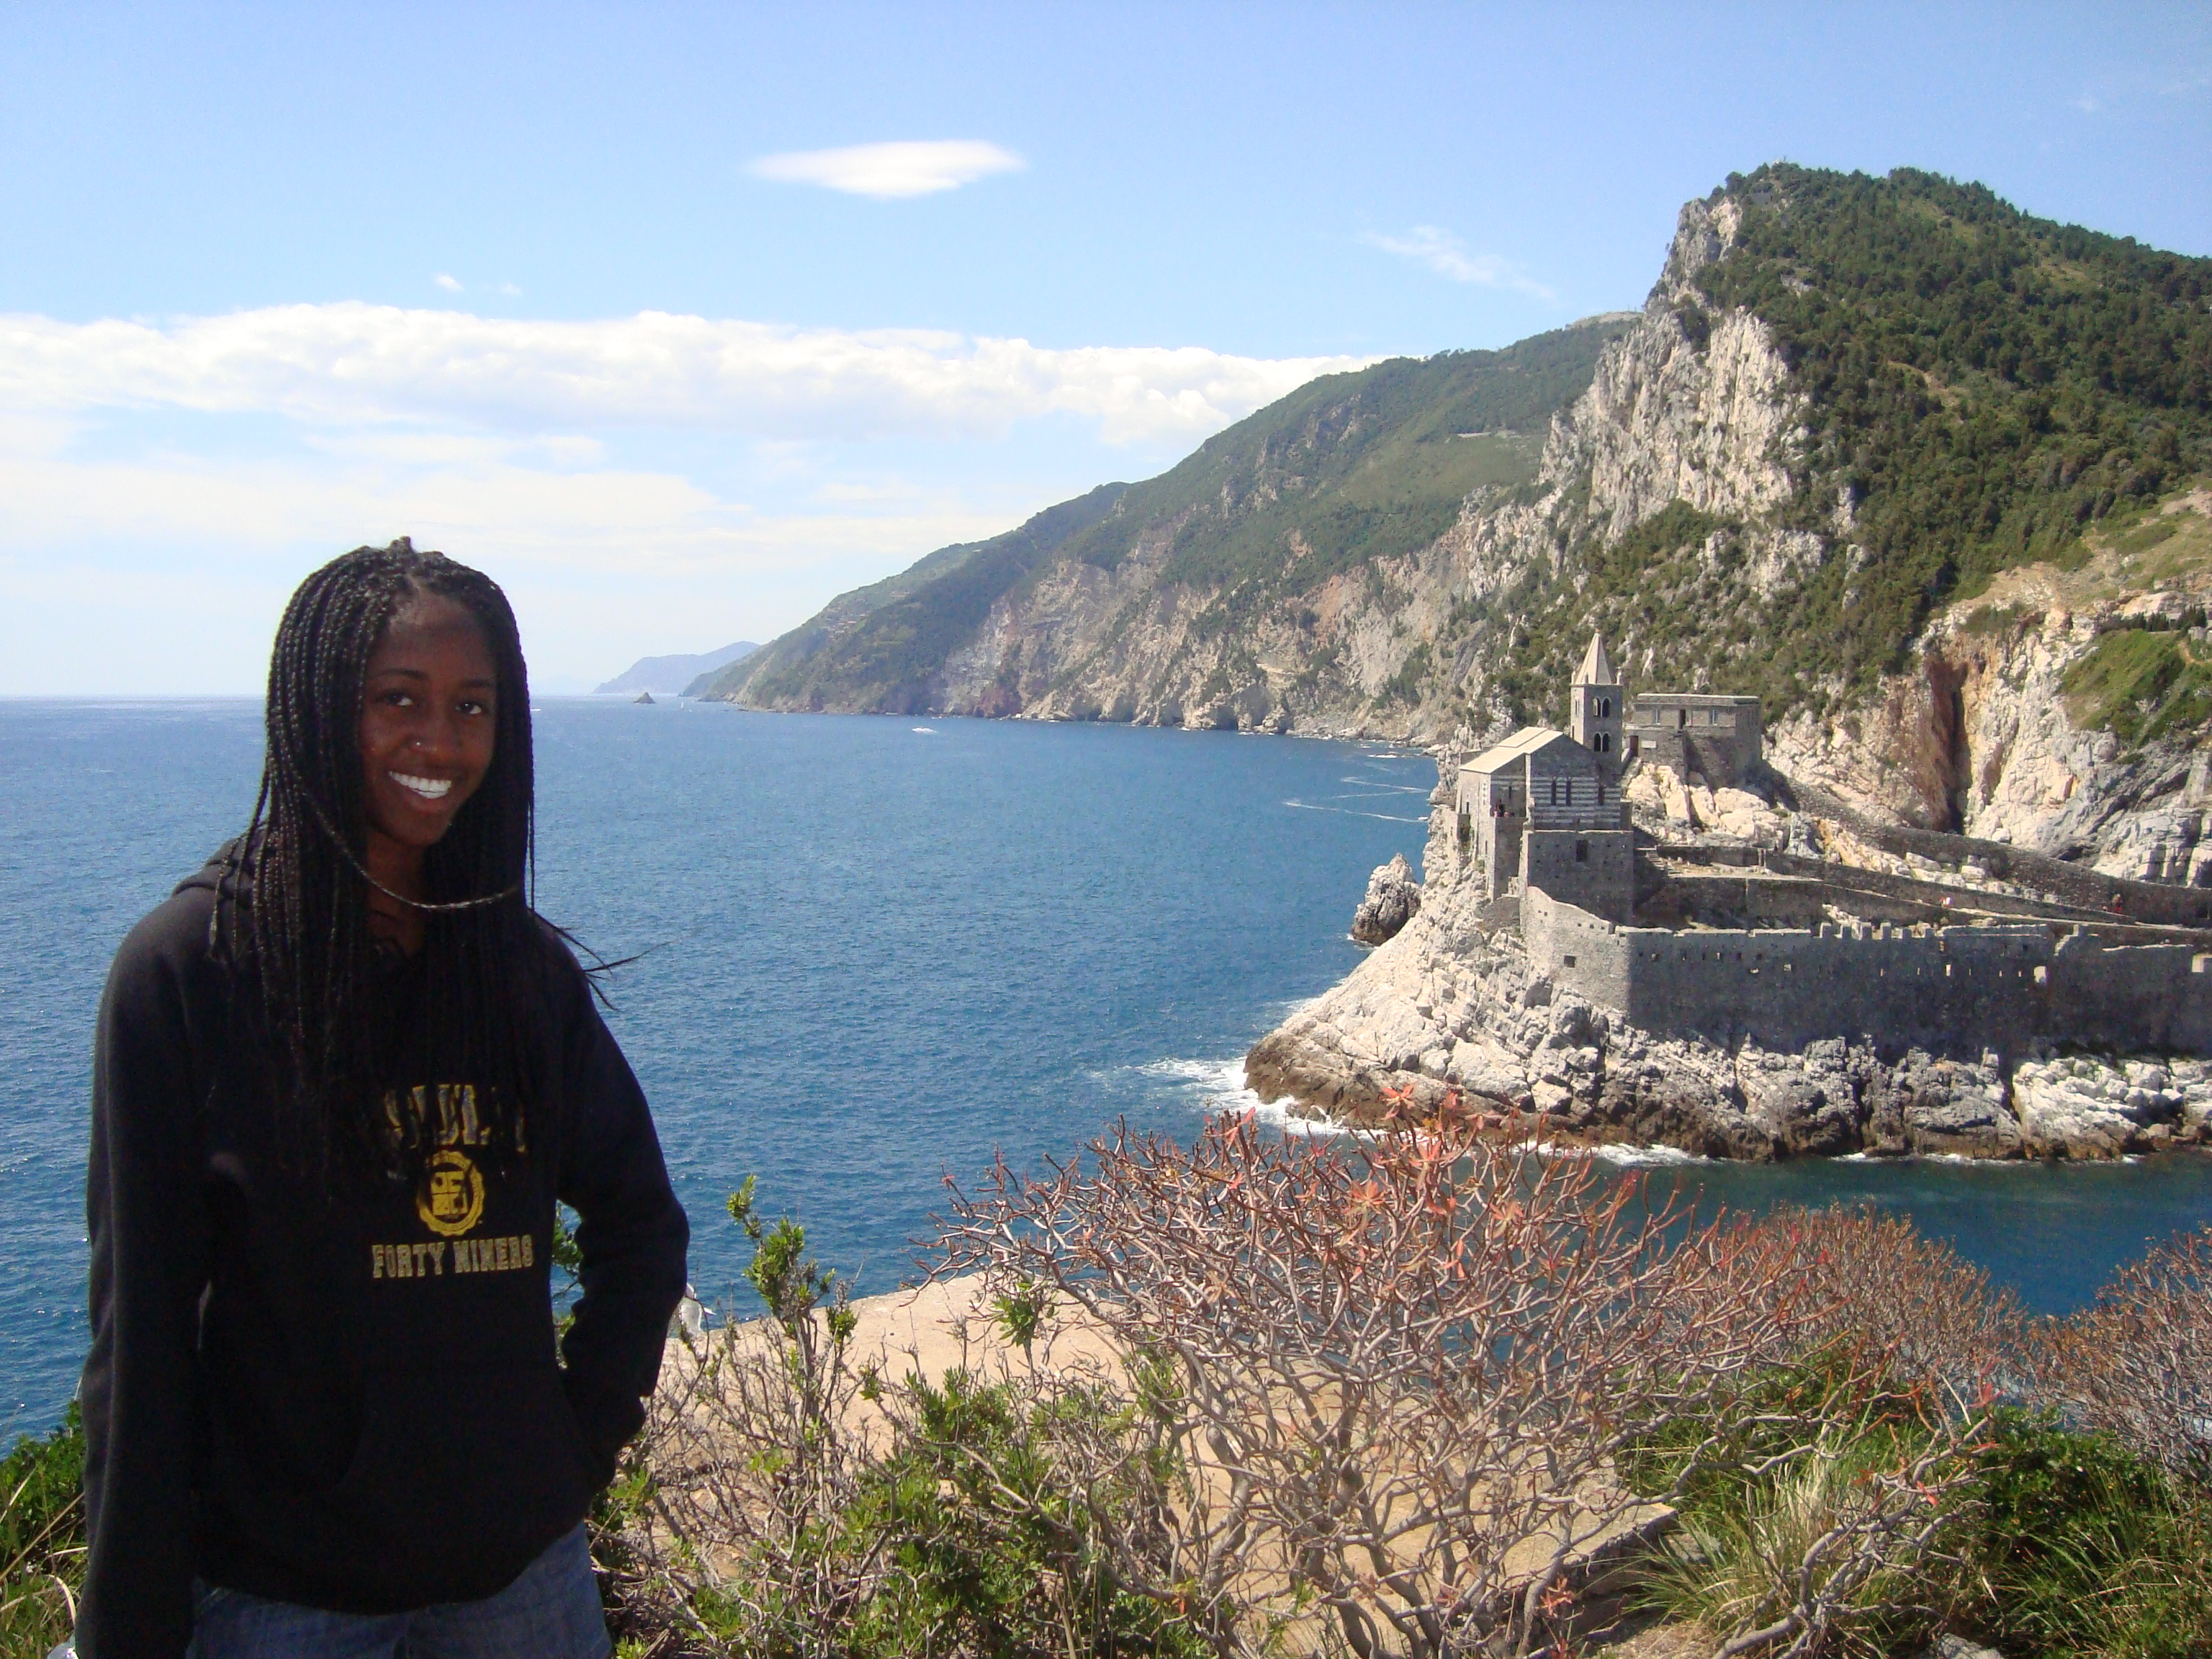 I studied abroad in a beautiful little town in Italy called Portvenere